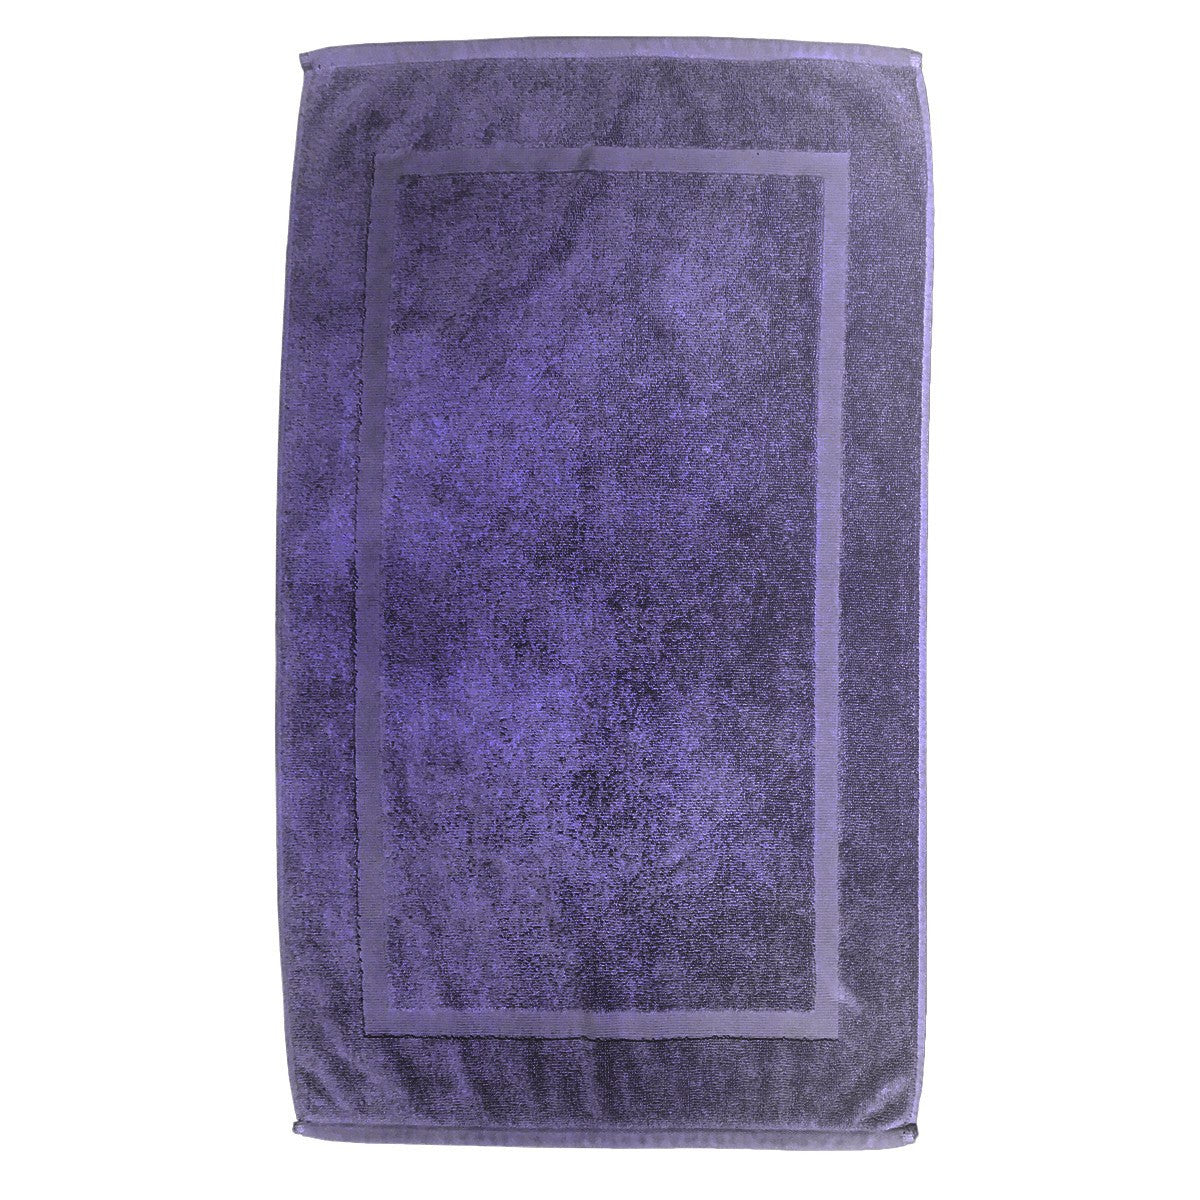 Home, Bathroom, Bath Mats, Rugs - Maui Luxury Hotel Resort Bath Mats